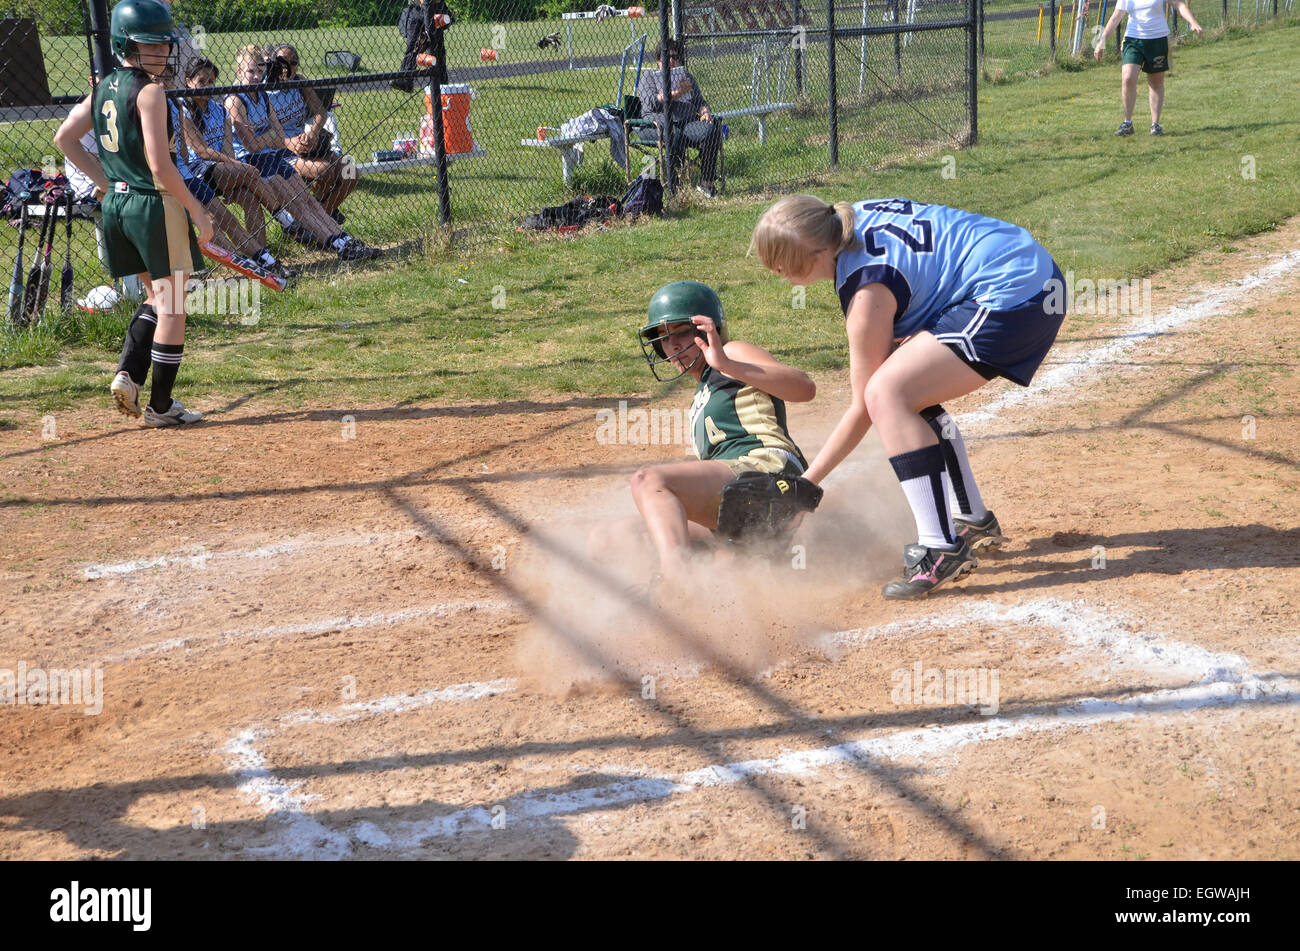 Girl tagged at home plate in a softball game Stock Photo